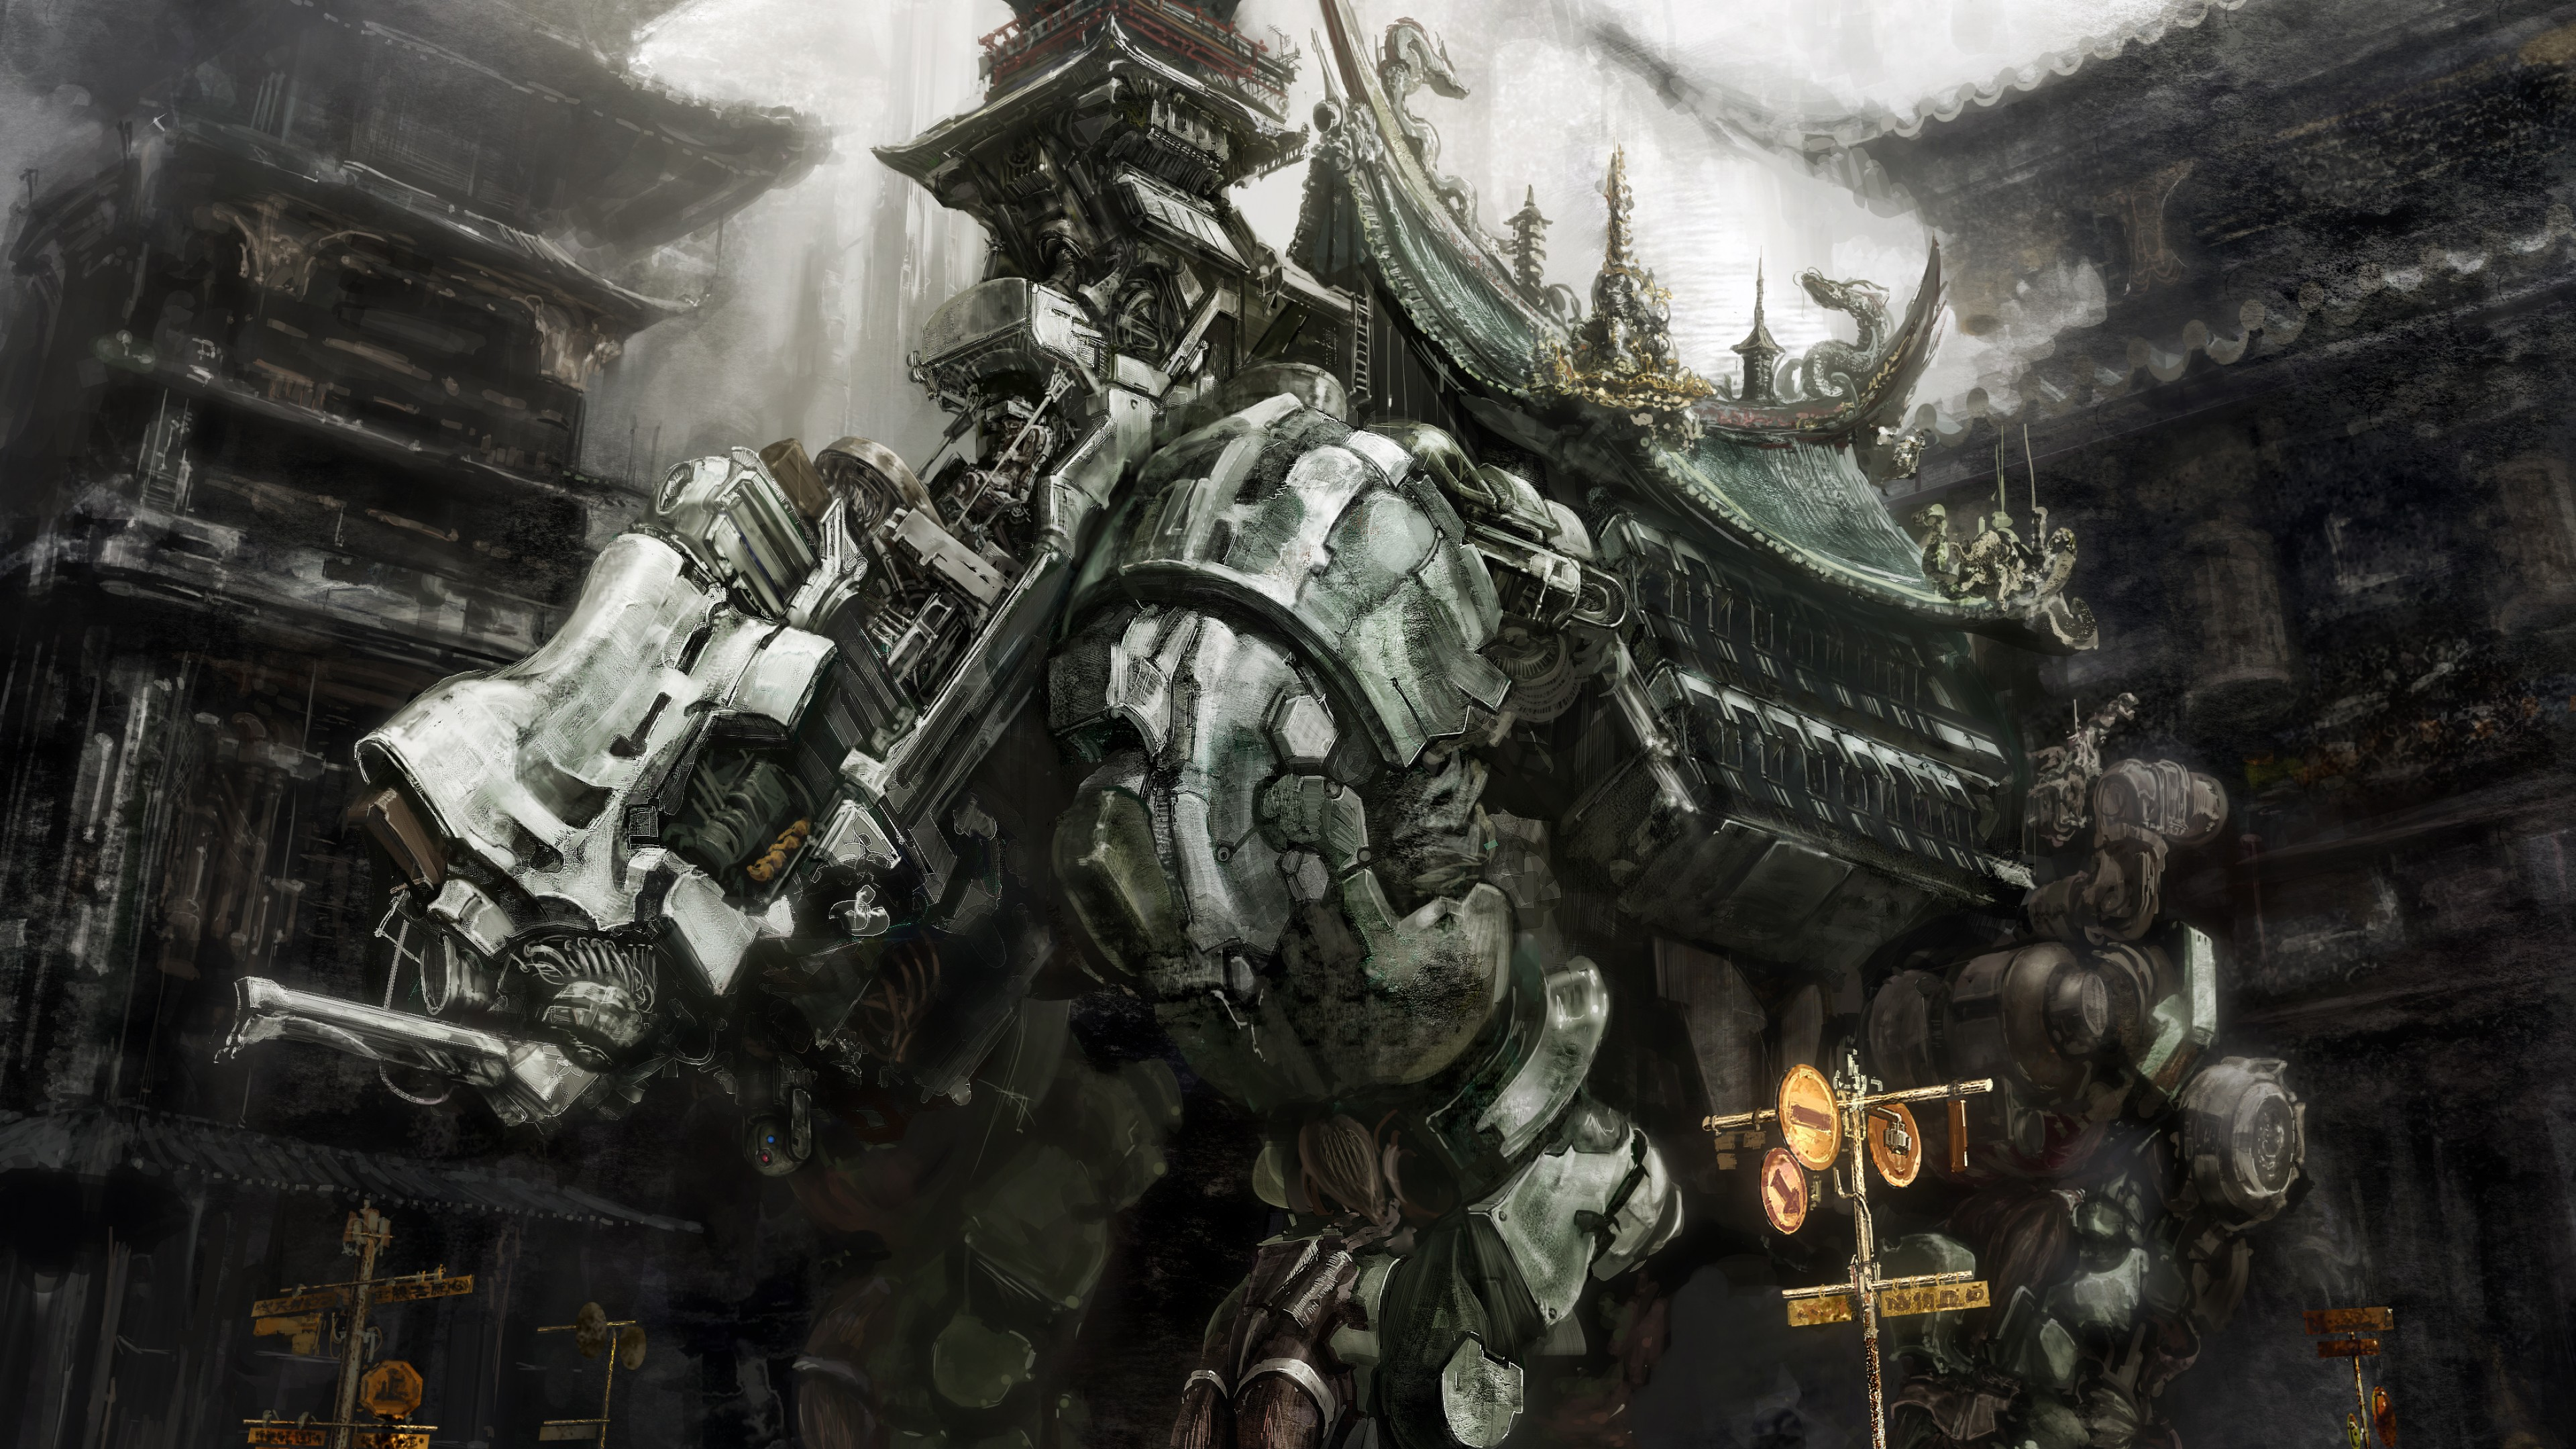 Sports Quotes Wallpapers Hd Wallpaper Futuristic Mecha Grey Artwork Anime Art